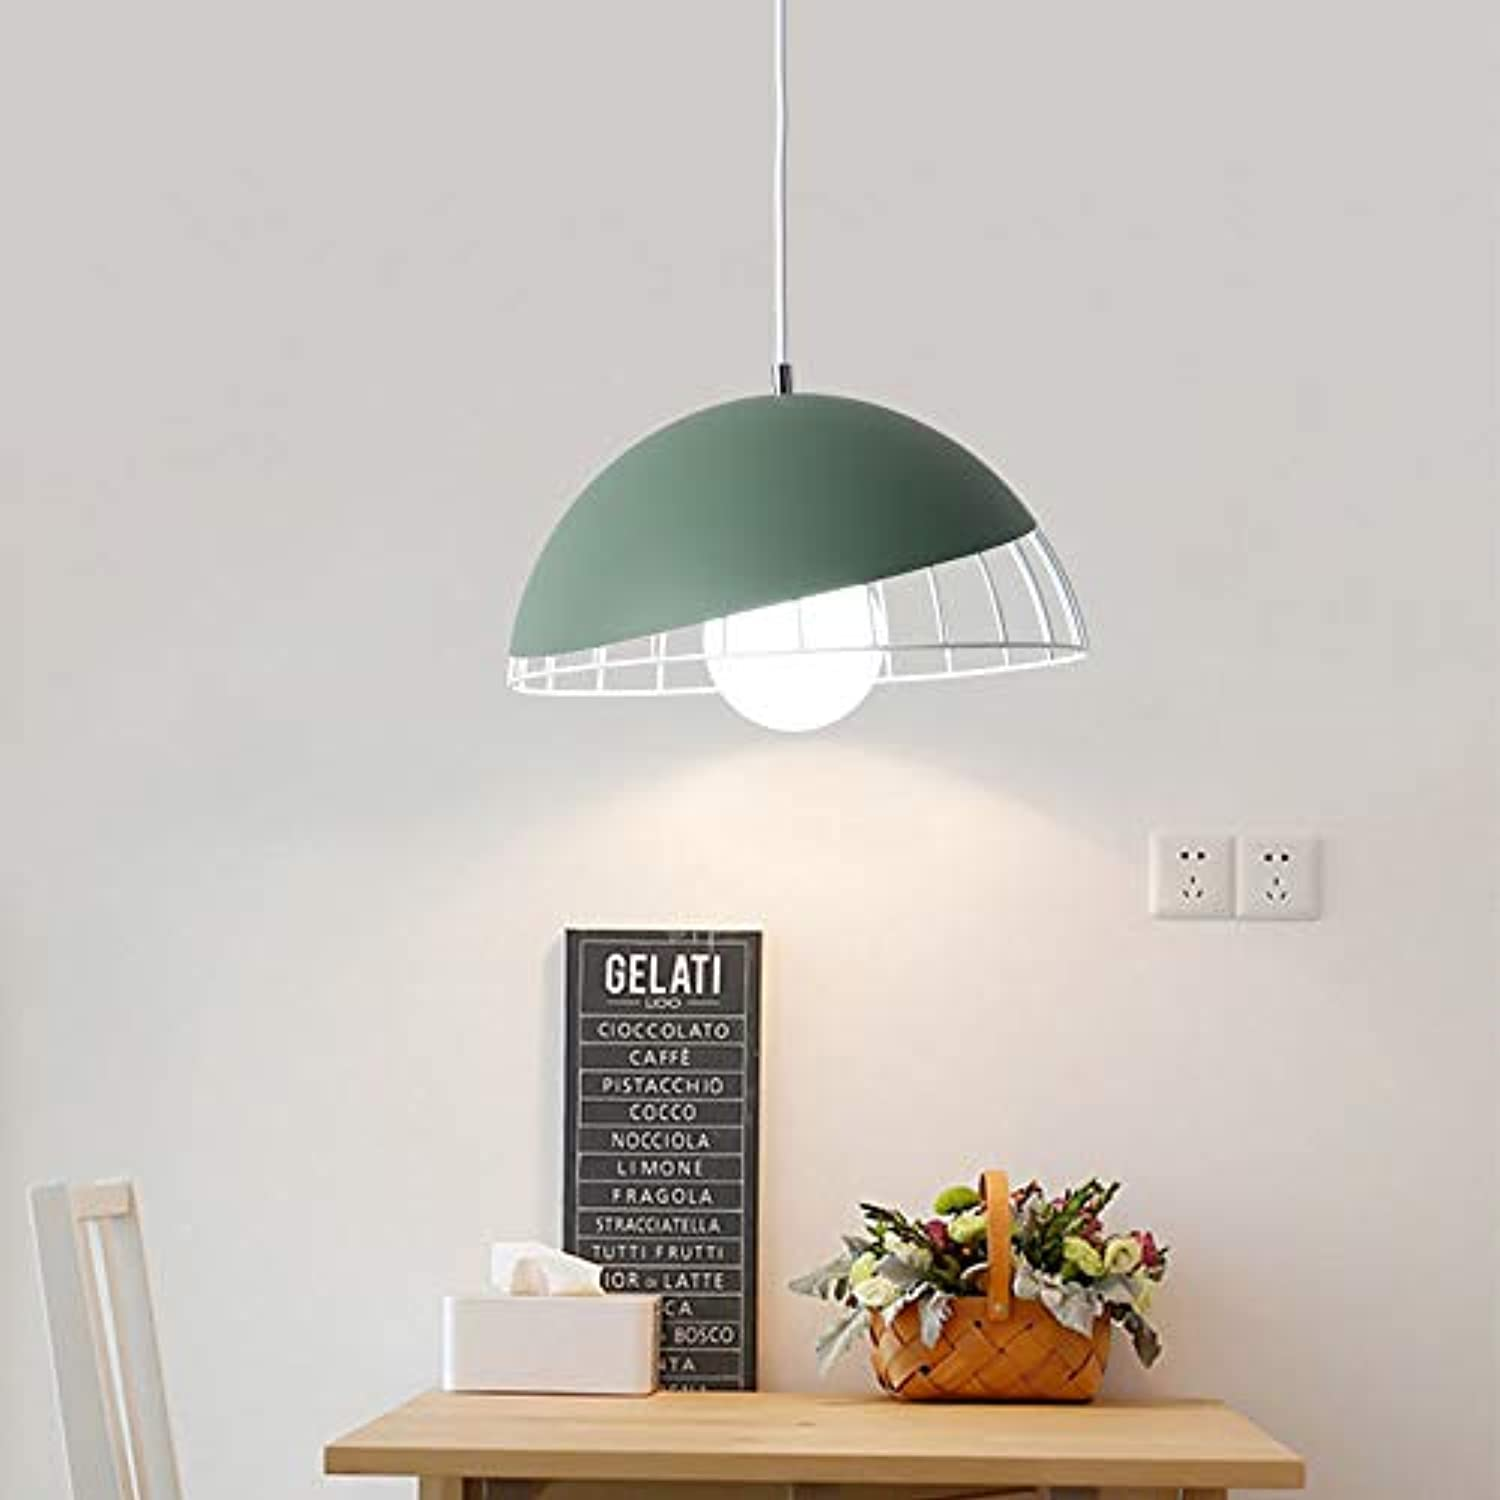 YAYONG Chandelier Restaurant Modern Minimalist Nordic Creative Table Lampe Runde LED Macaron Pendant Light Grün